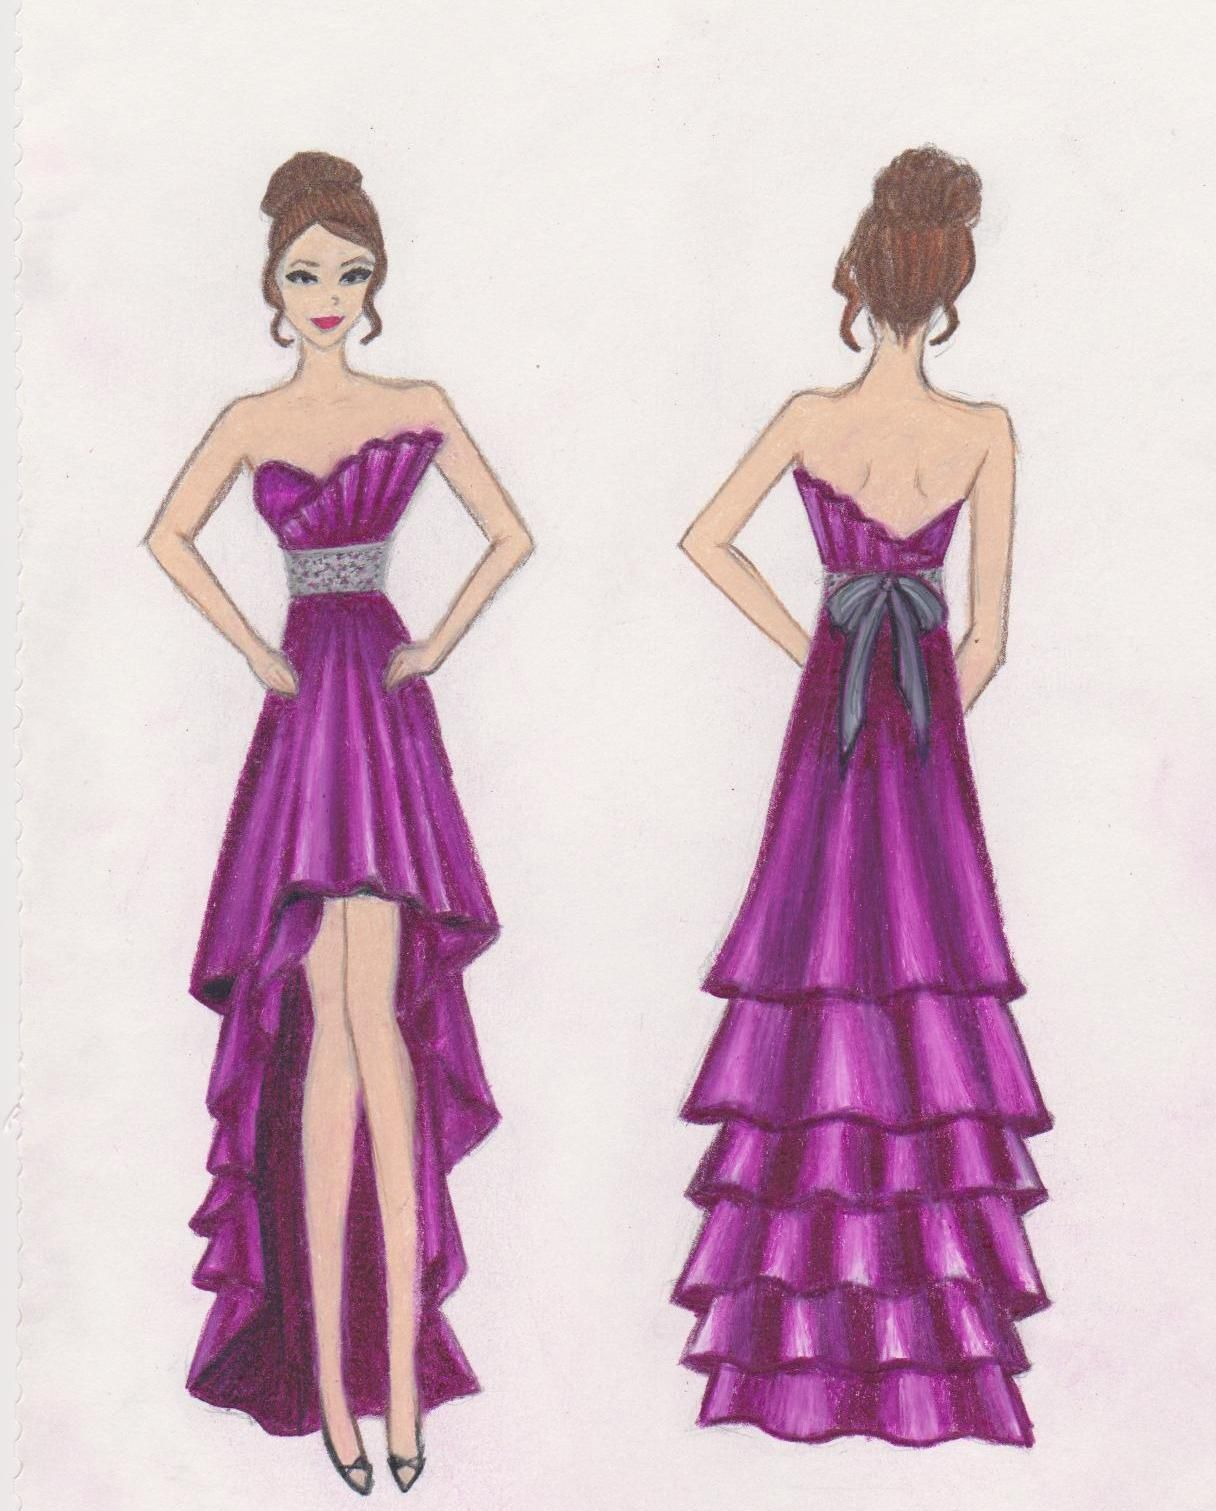 Short Dress Drawing : short, dress, drawing, Dress, Design, Contest, Finalists!, Sketches,, Drawing,, Fashion, Sketches, Dresses